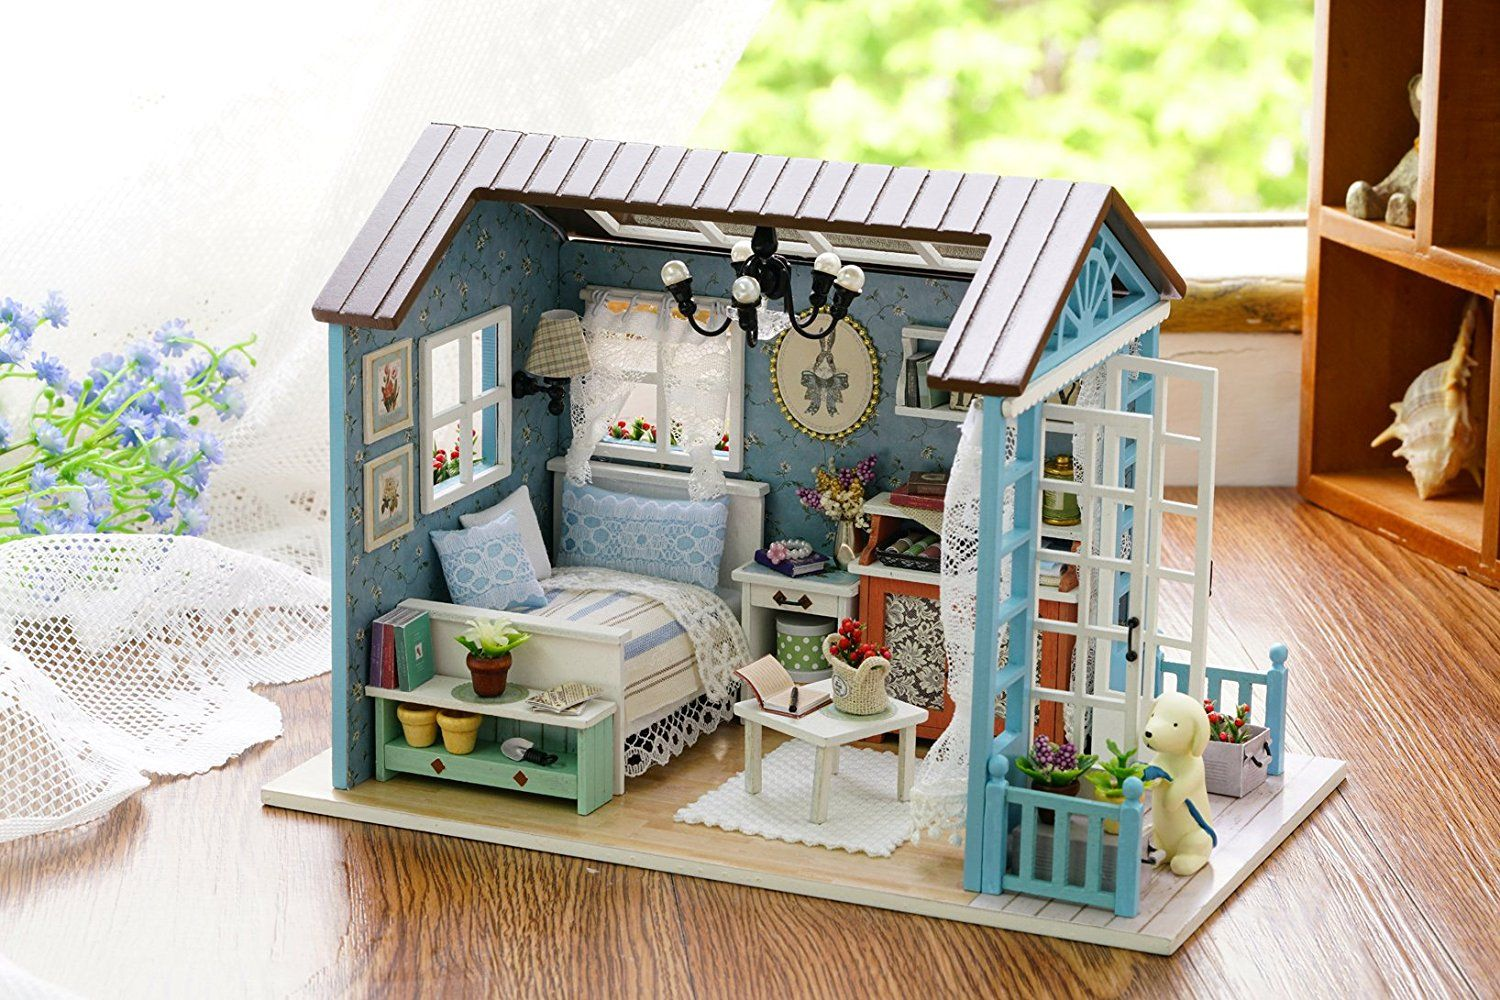 Lovely Amazon.com: Flever Dollhouse Miniature DIY House Kit Creative Room With  Furniture For Romantic Gift (Forest Time): Kitchen U0026 Dining